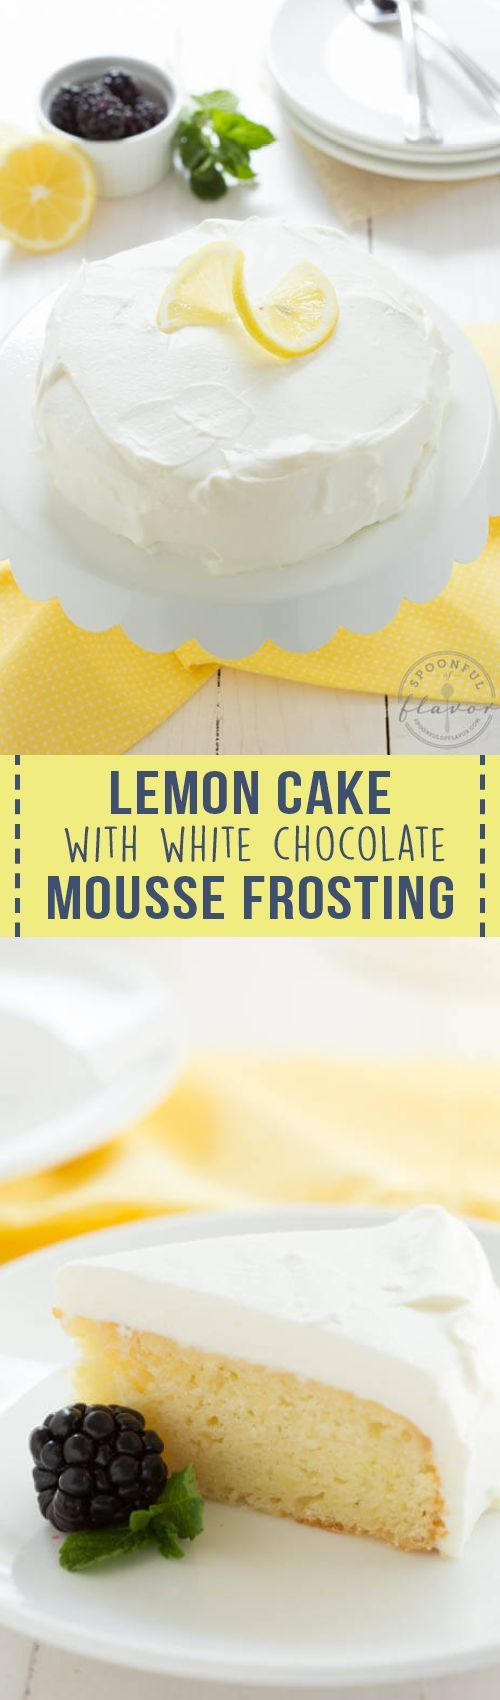 Lemon Cake with White Chocolate Mousse Frosting is baked in a 6-inch round cake pan and topped with white chocolate mousse, this lemon cake is an impressive small cake perfect for two people!